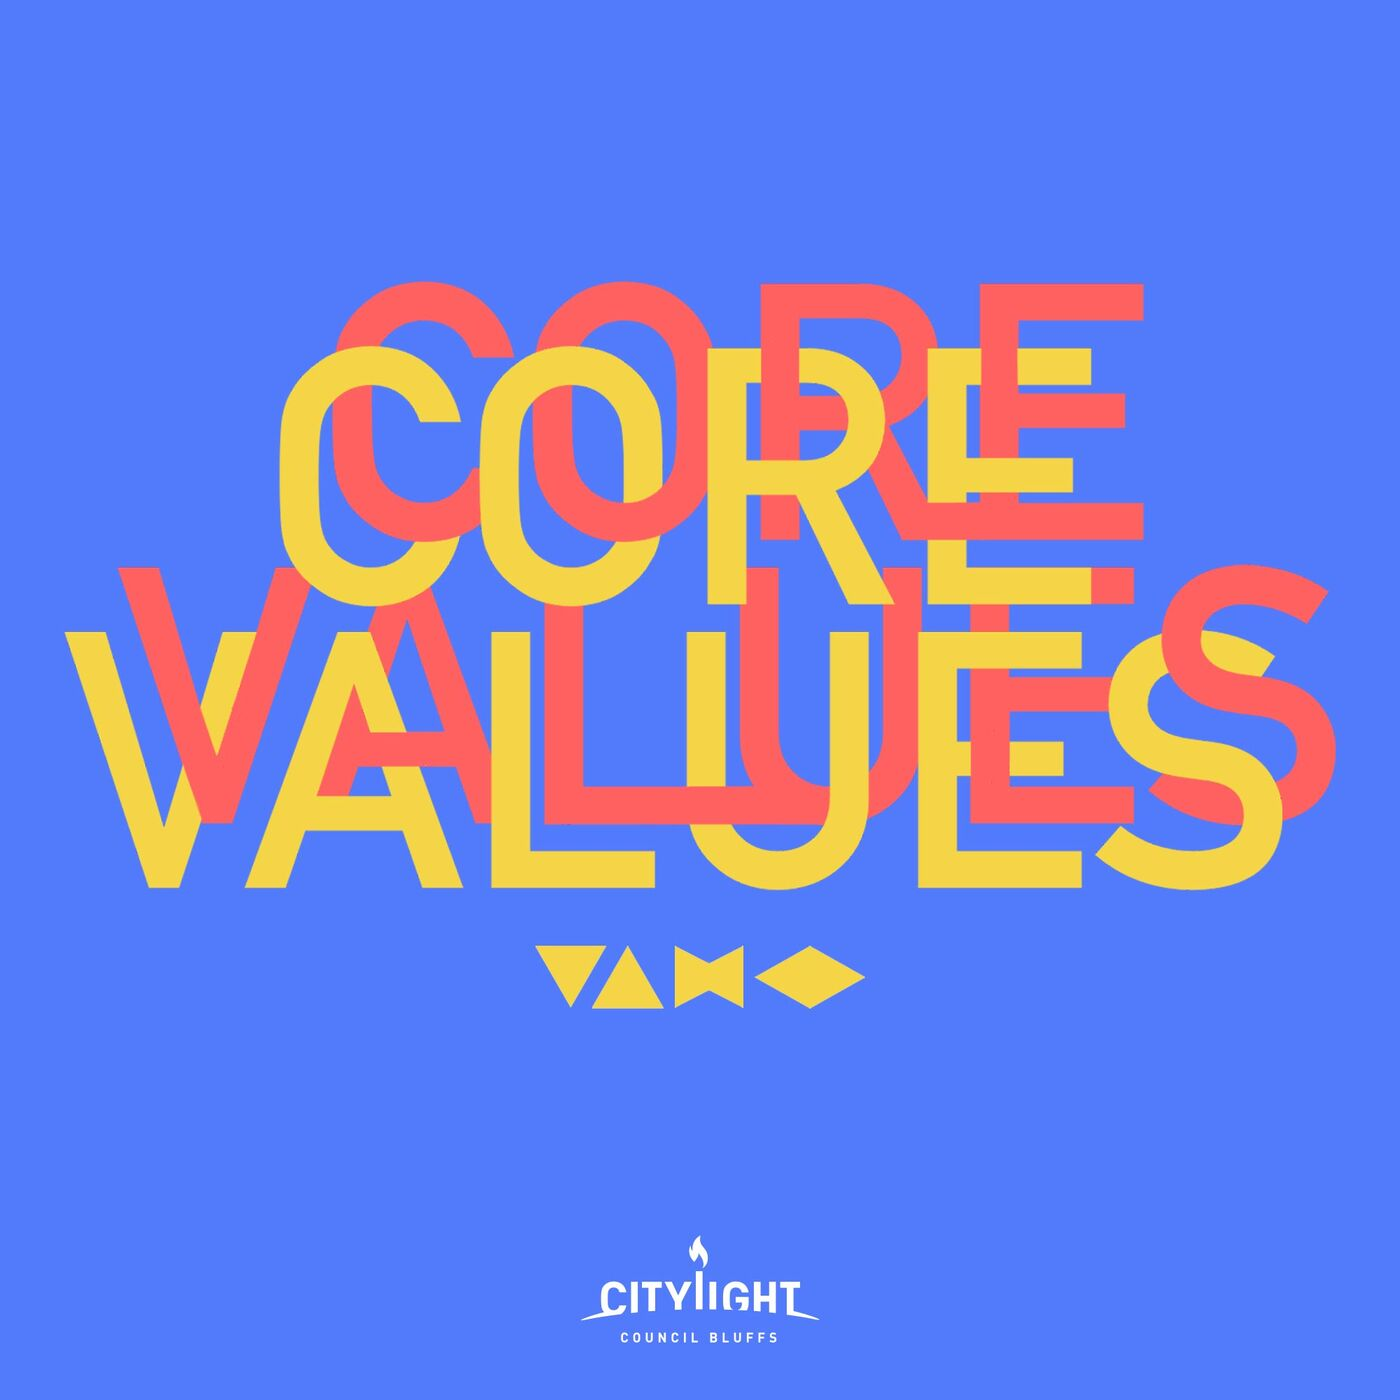 Core Values 2020: Up, Spiritual Formation